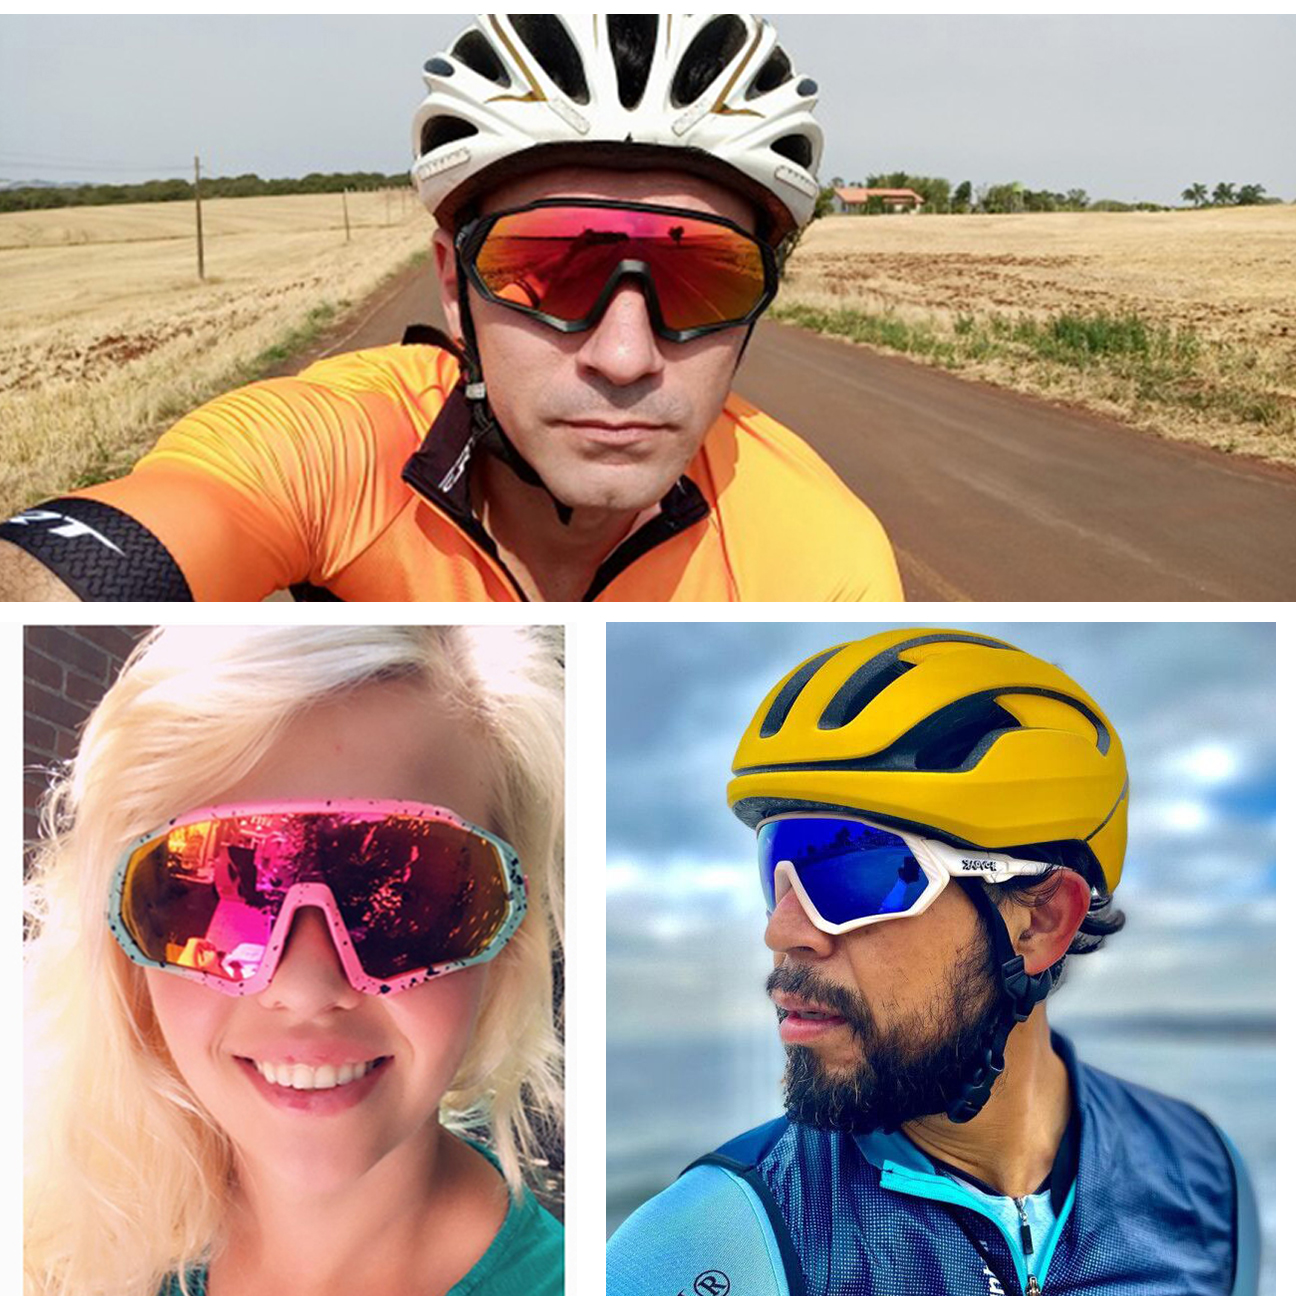 Riding Cycling Sunglasses Mtb Polarized Sports Cycling Glasses Goggles Bicycle Mountain Bike Glasses Men s Women